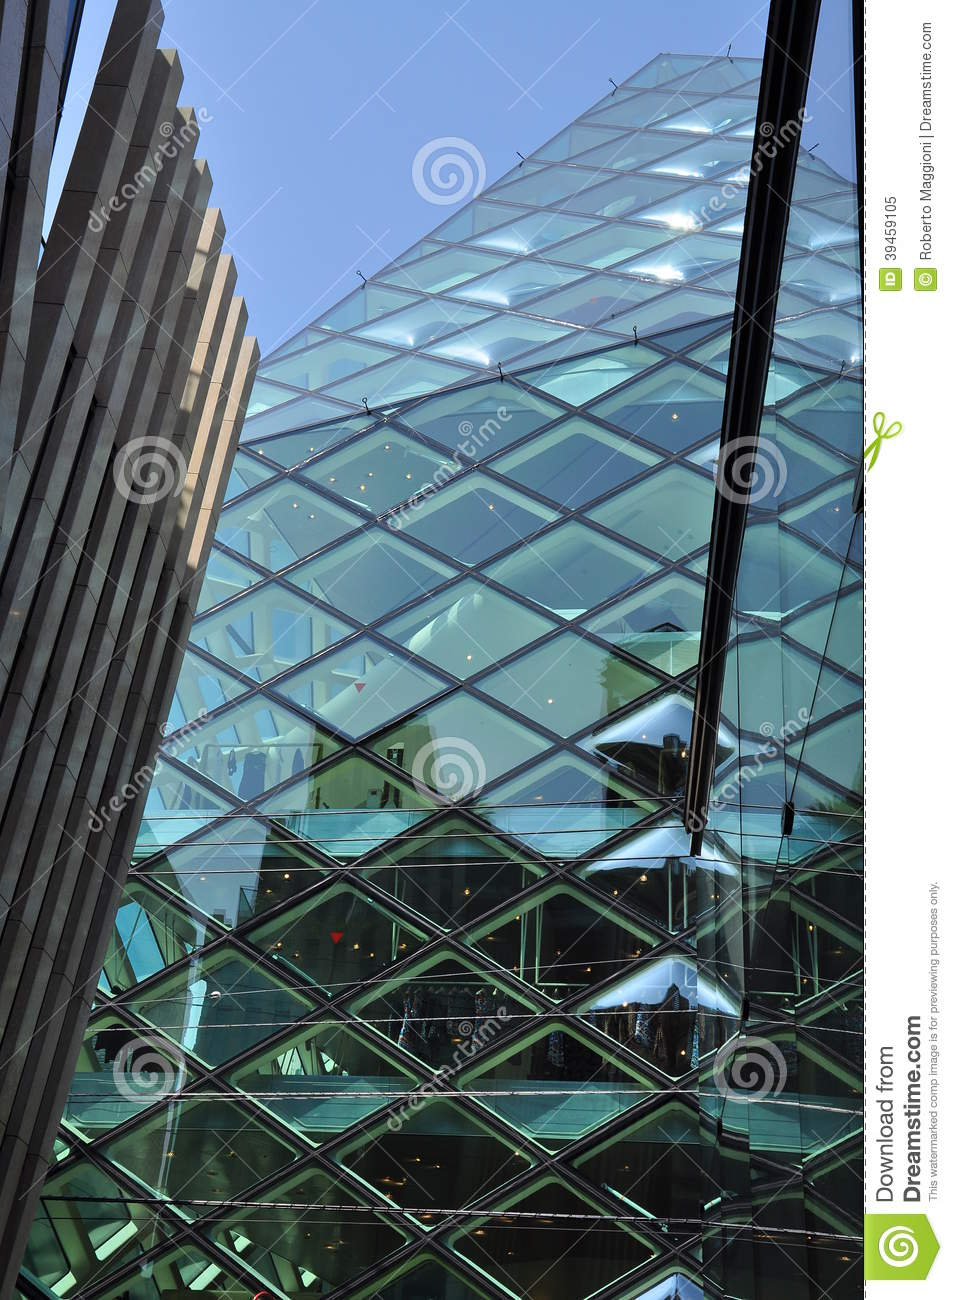 Modern window design and curved glass panels stock photo for Glass panel design